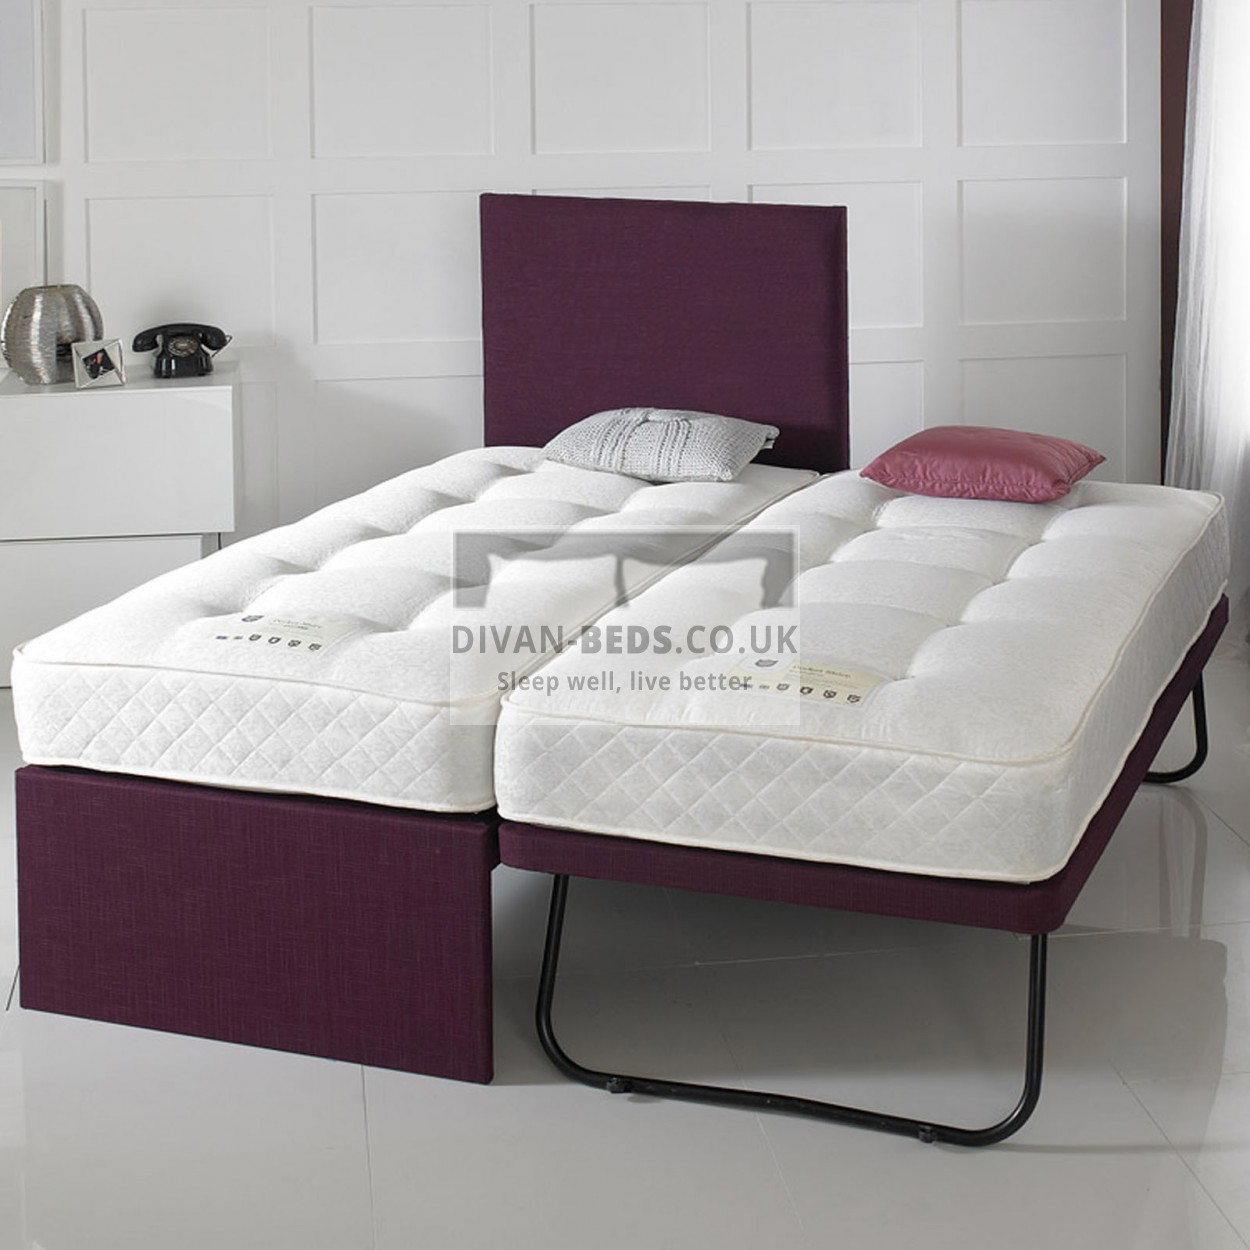 Terrance Trundle Divan Guest Bed With 2 Spring Memory Foam Mattresses Guaranteed Cheapest Free Fast Delivery